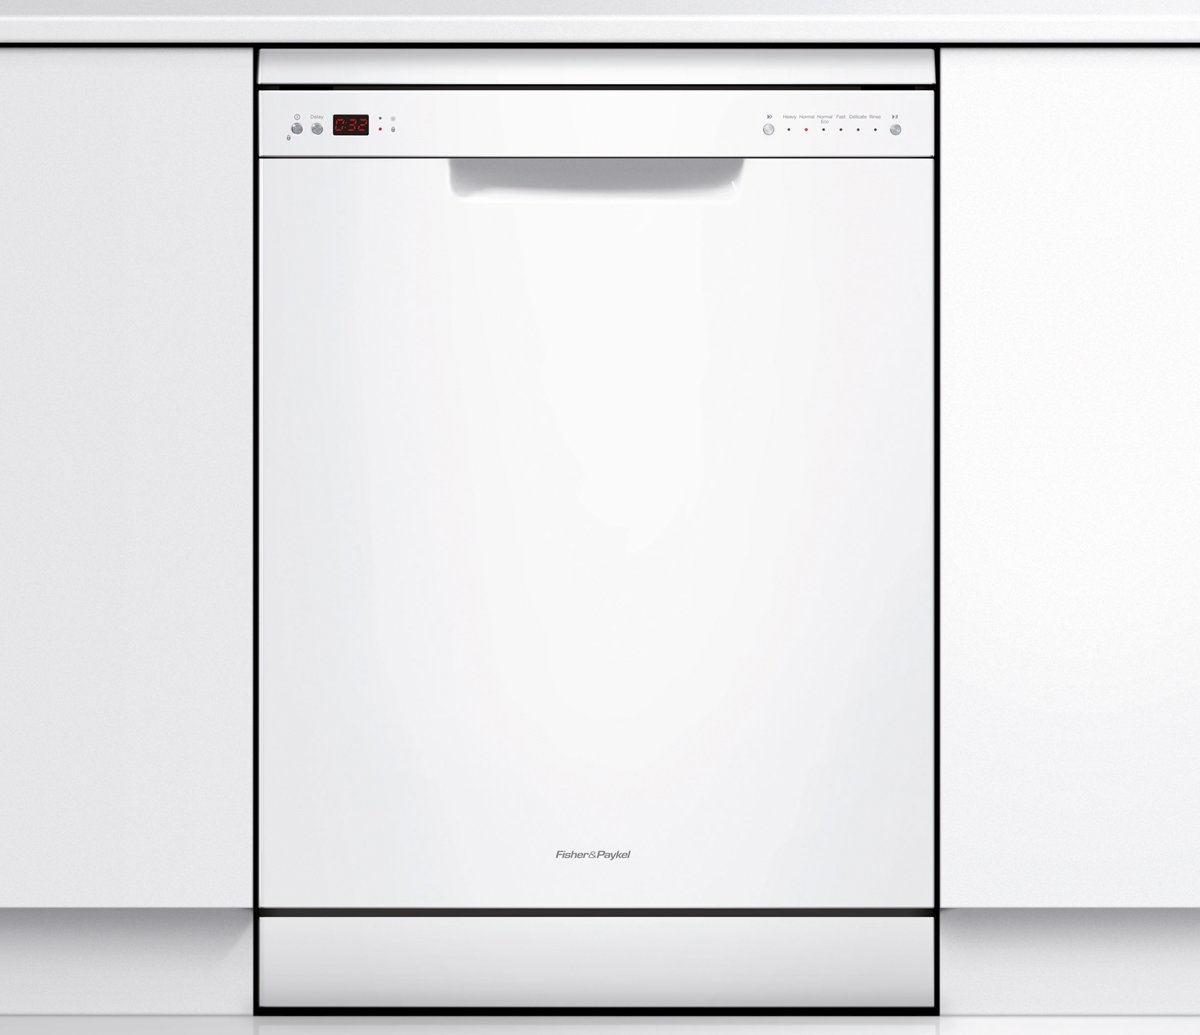 Fisher Paykel Dishwasher DW60CHW1 Front on Cabinet high.jpeg